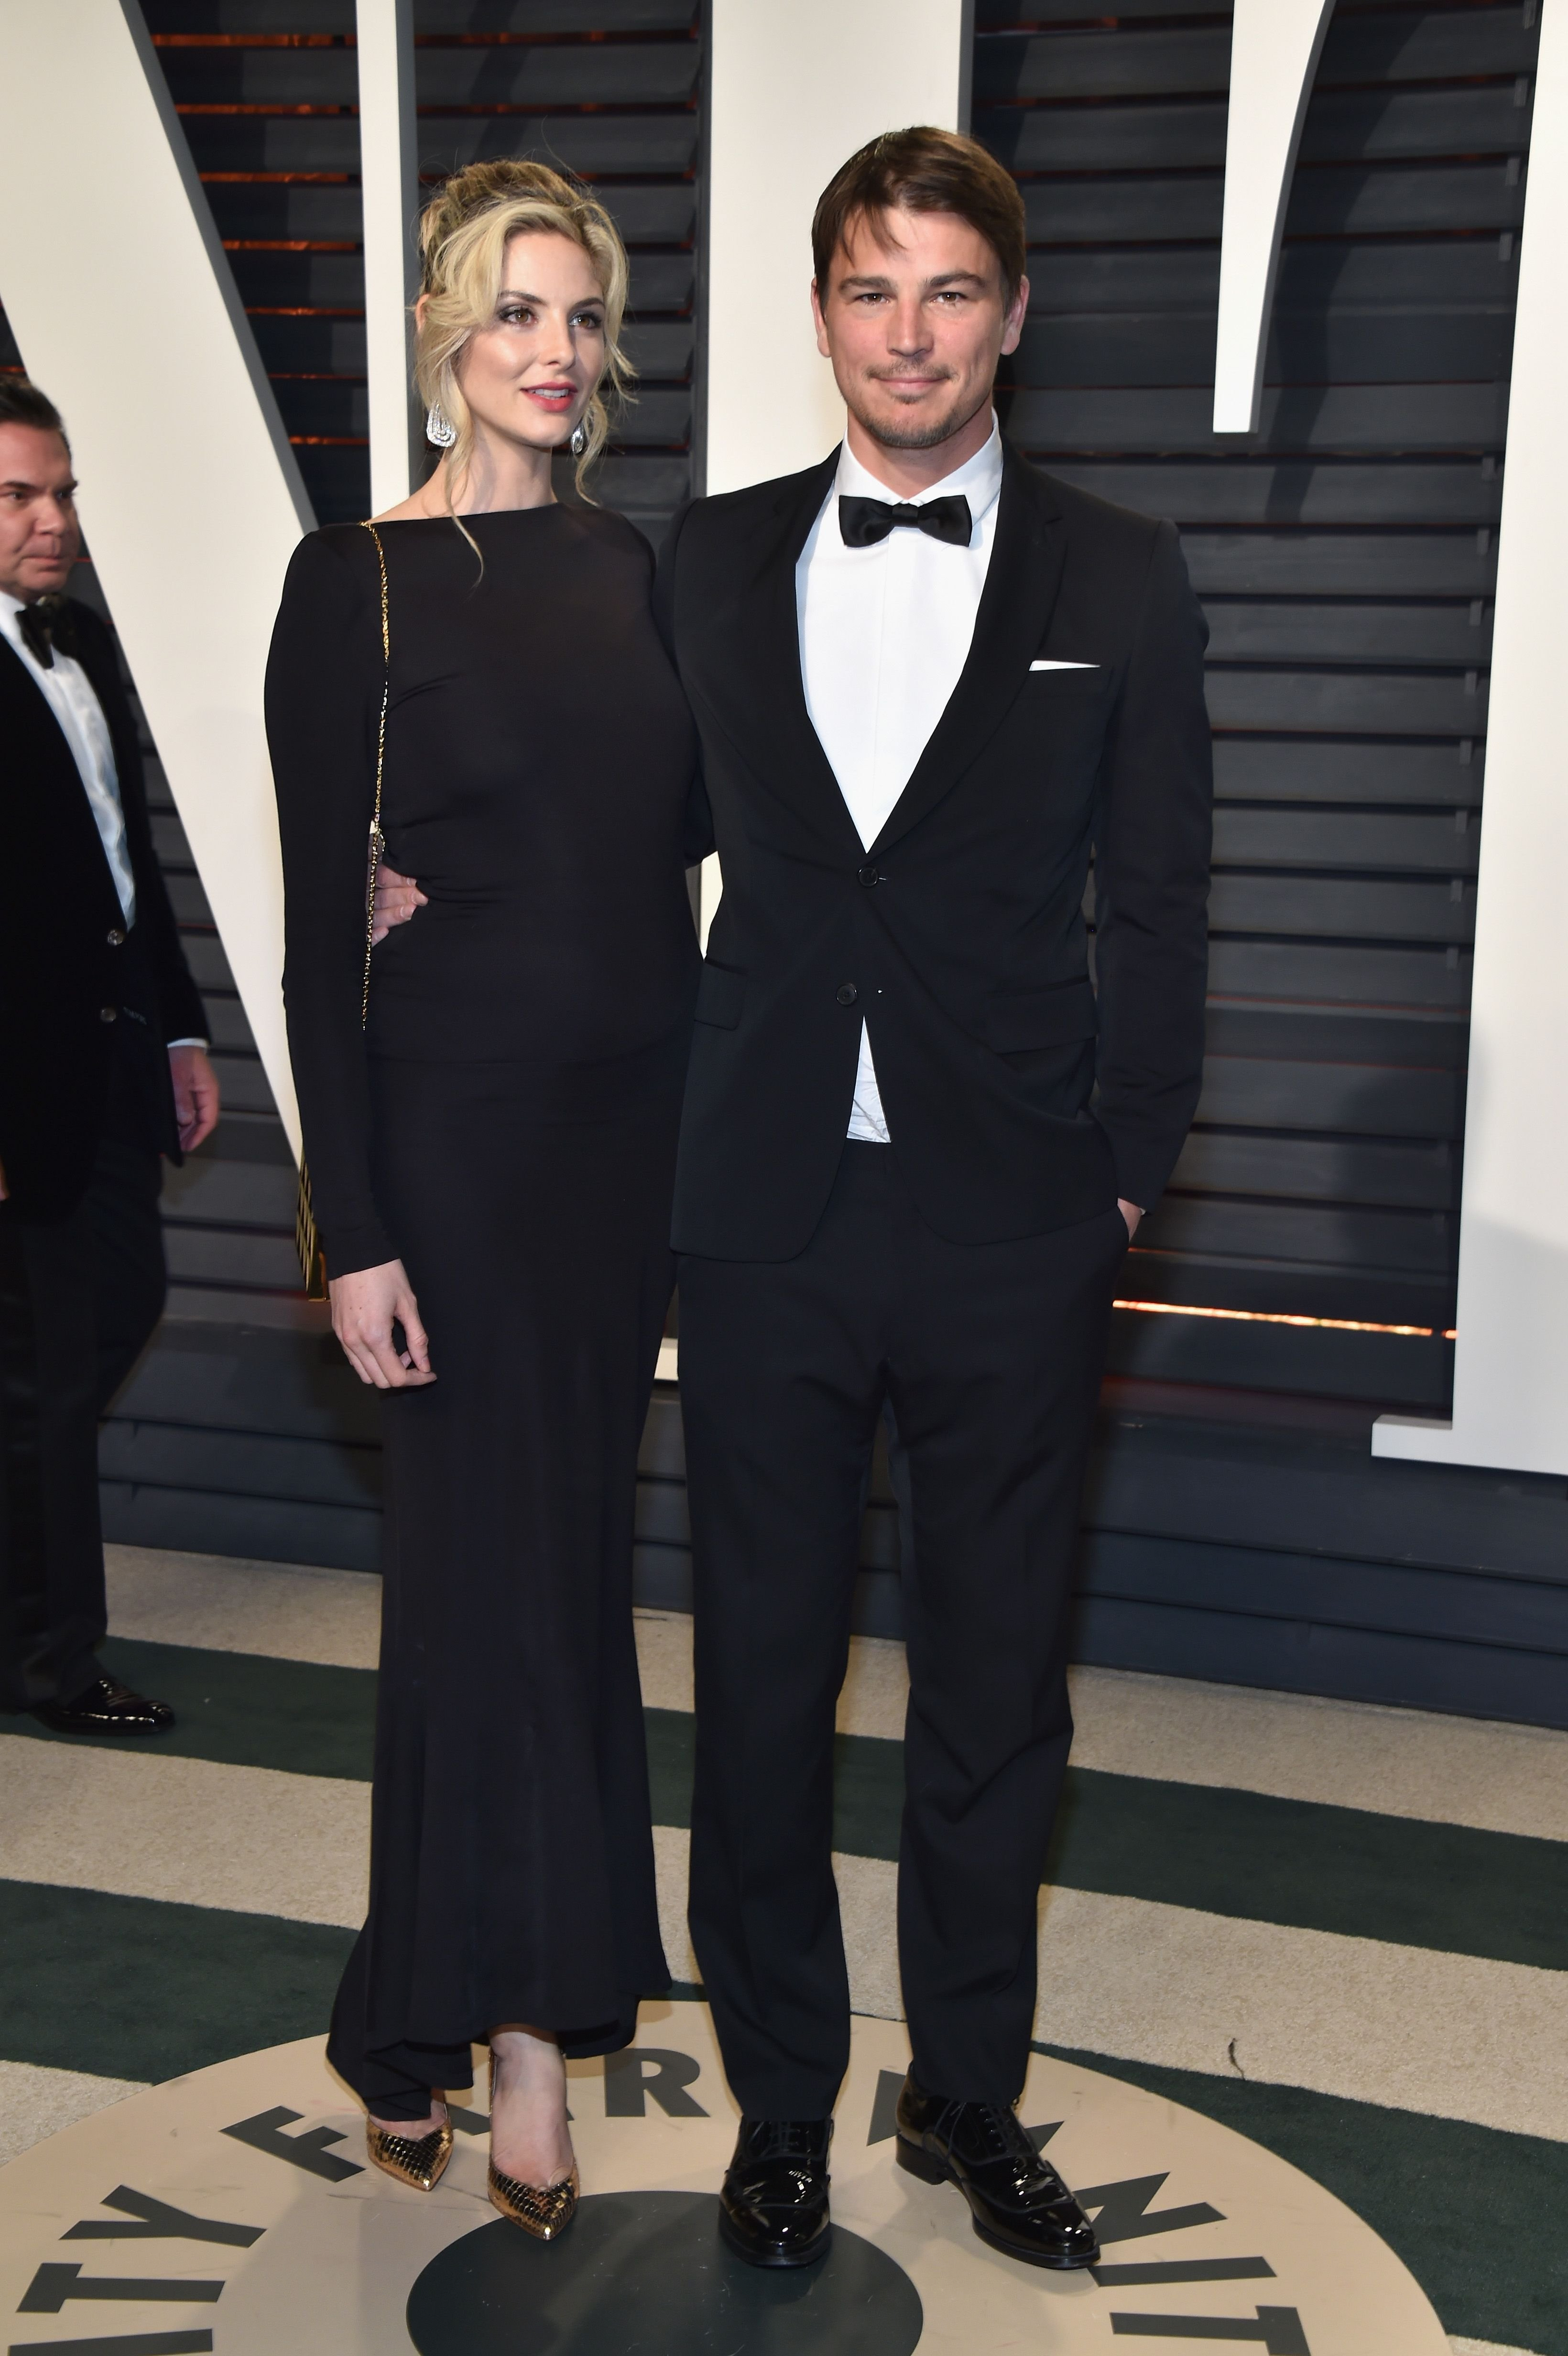 Tamsin Egerton and Josh Hartnett at the 2017 Vanity Fair Oscar Party in Beverly Hills, California   Source: Getty Images